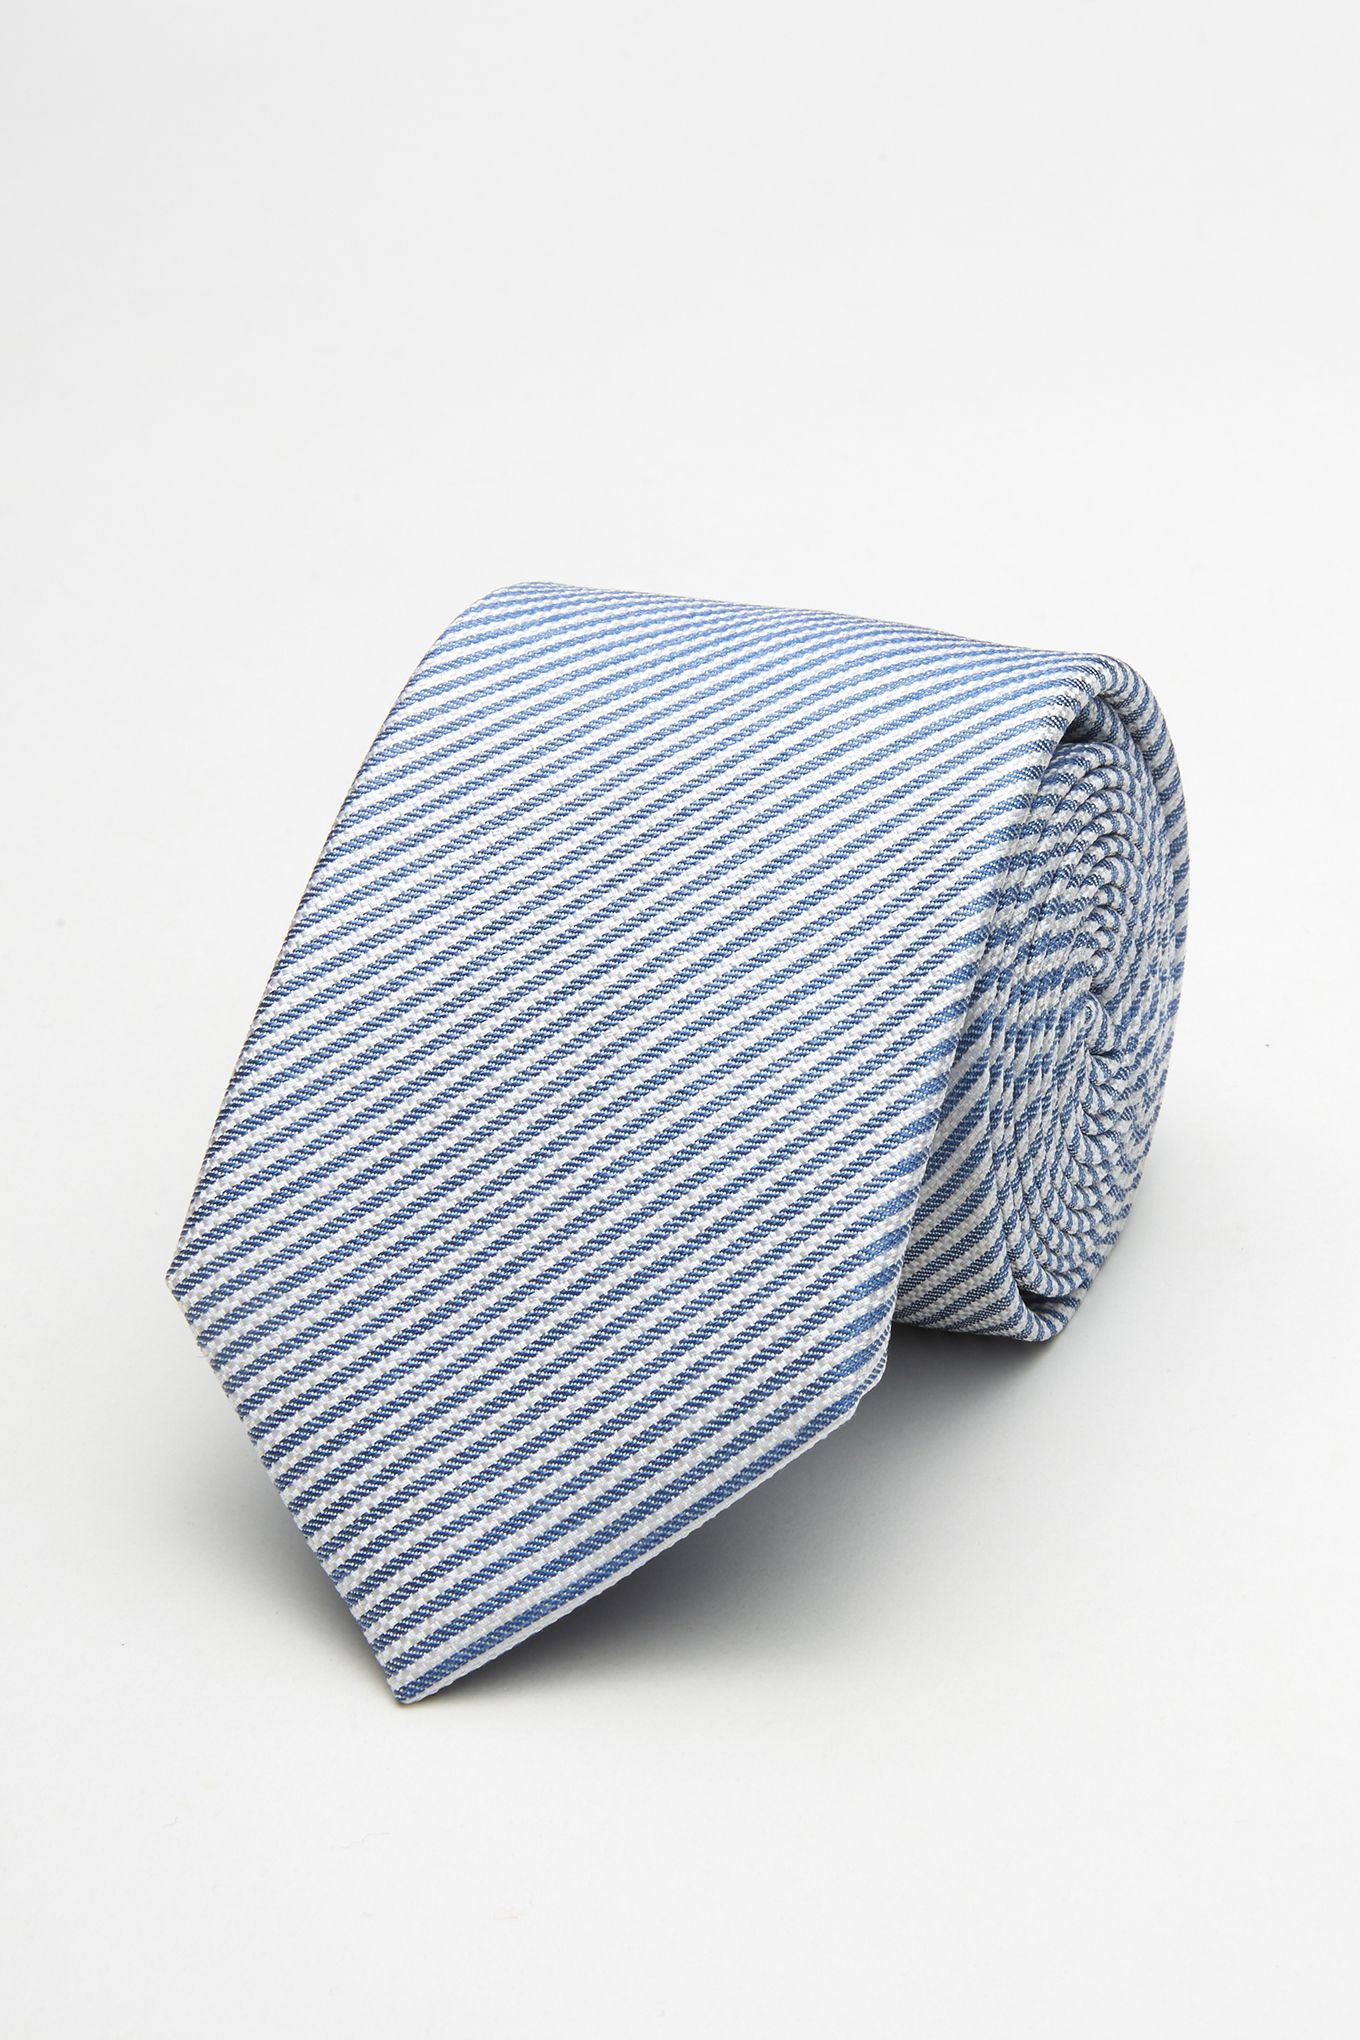 Men s Striped Tie